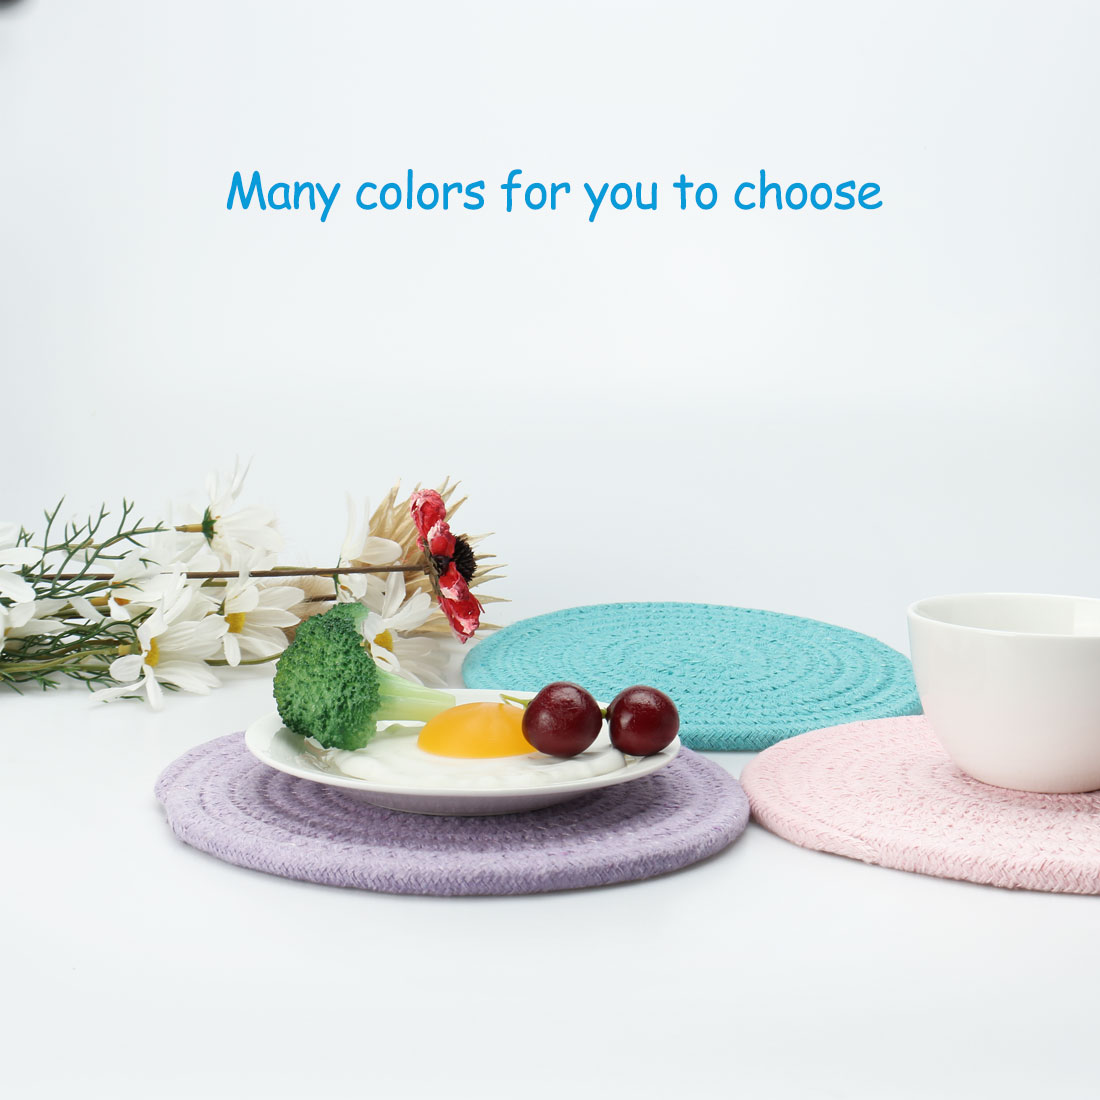 "Round Cotton Thread Weave Heat Resistant Mat 7"" Dia Placemats/Spoon Rest/Coasters Mats, Kitchen Dining Mats Seagreen 3pc - image 1 de 7"